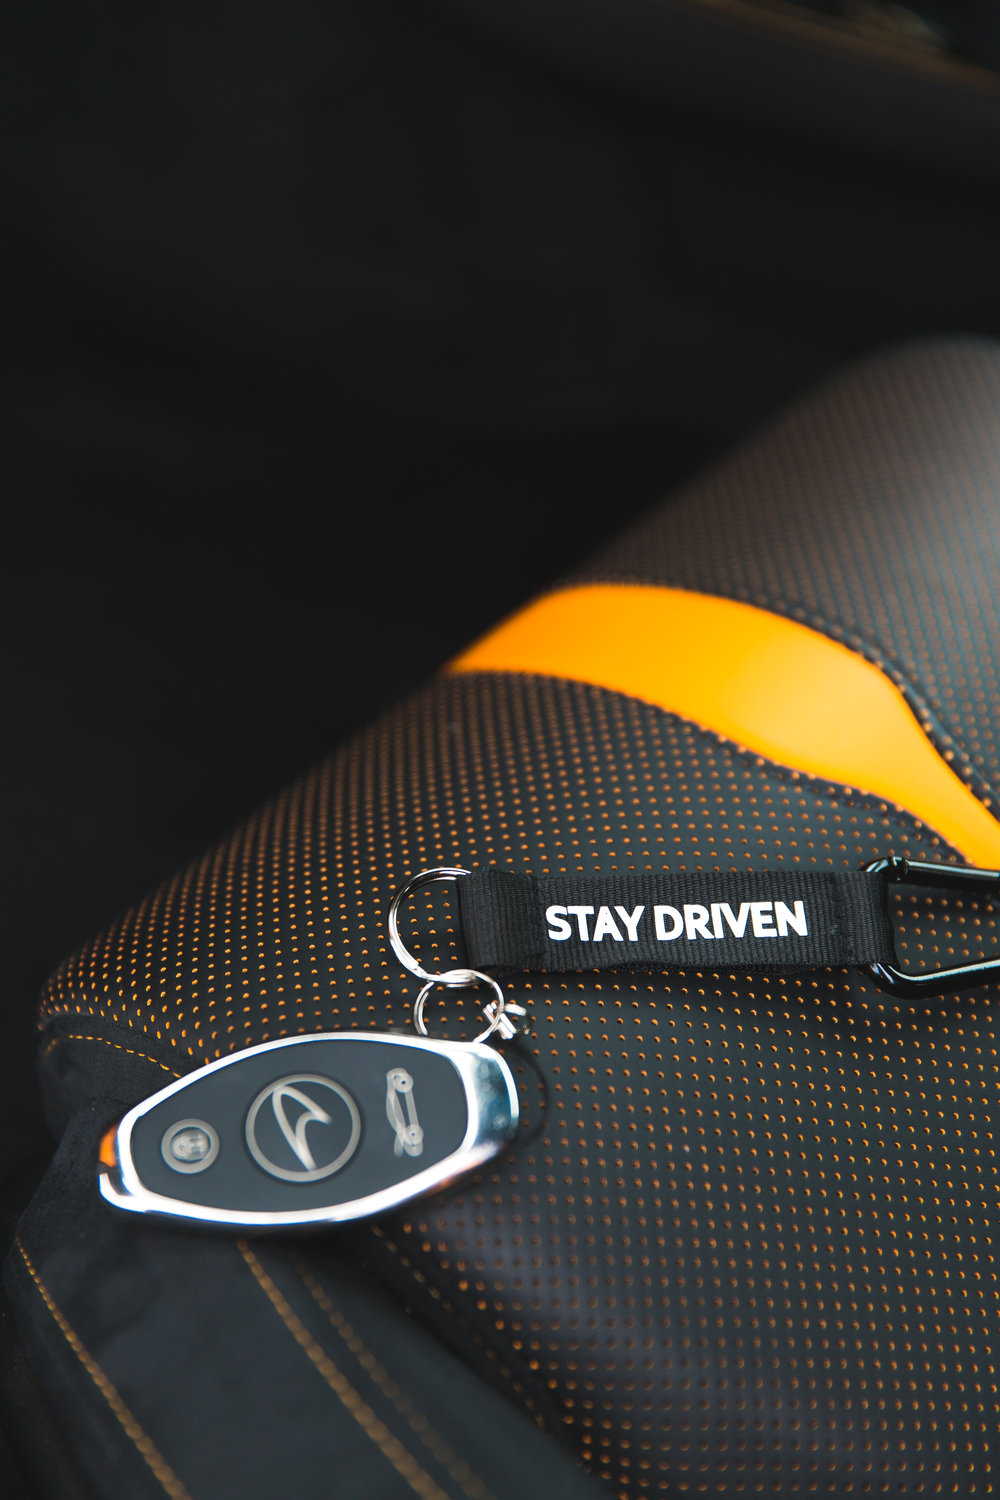 Stay_Driven_MINI_Lanyard_Mclaren-2.jpg